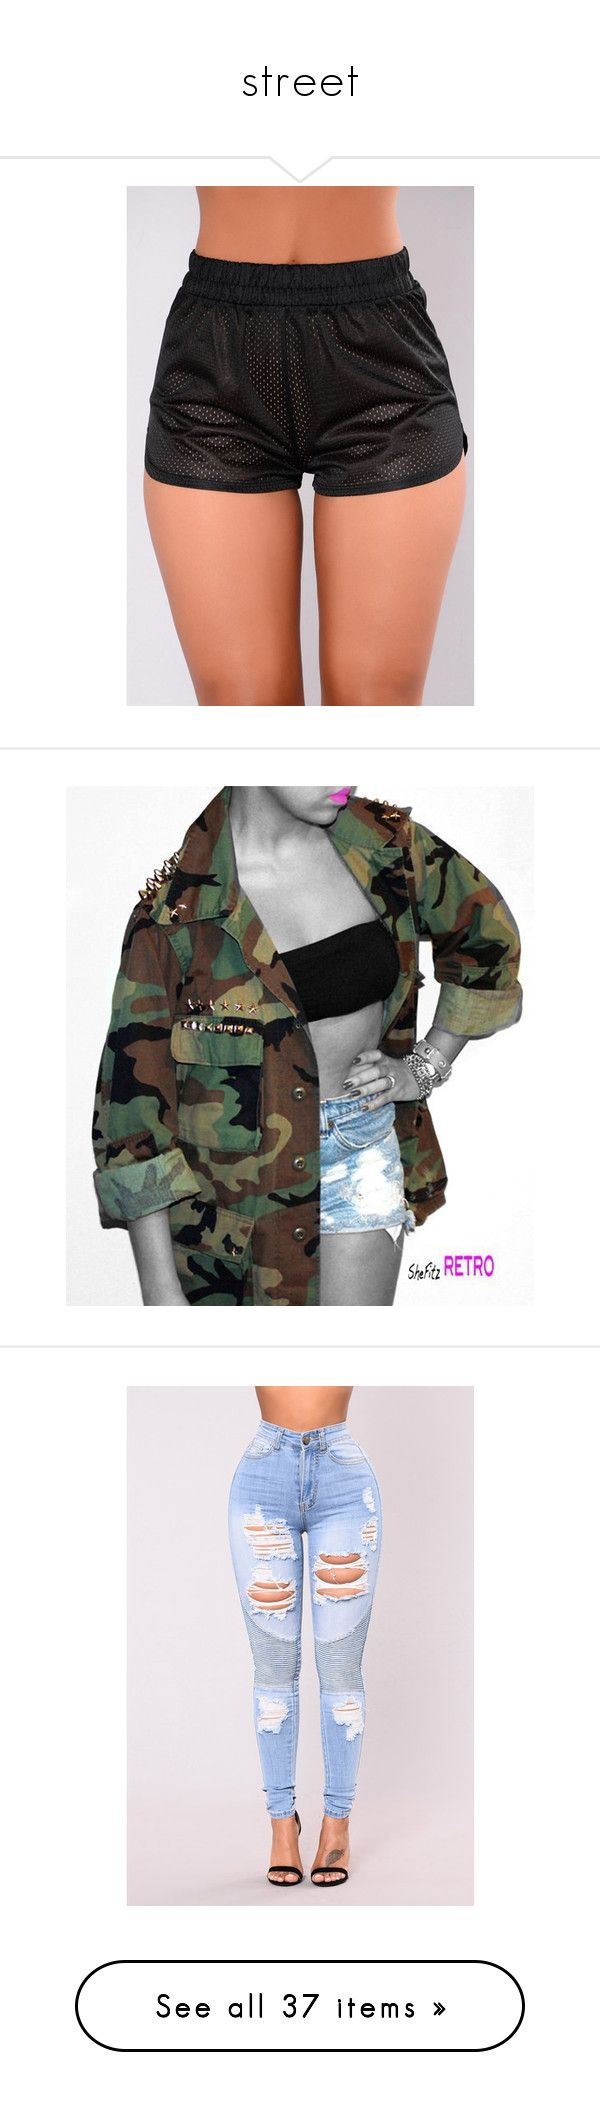 """""""street"""" by siyaaaaa ❤ liked on Polyvore featuring outerwear, jackets, studded jacket, vintage jackets, military camouflage jacket, vintage camo jacket, army camo jacket, jeans, bottoms and high-waisted jeans"""